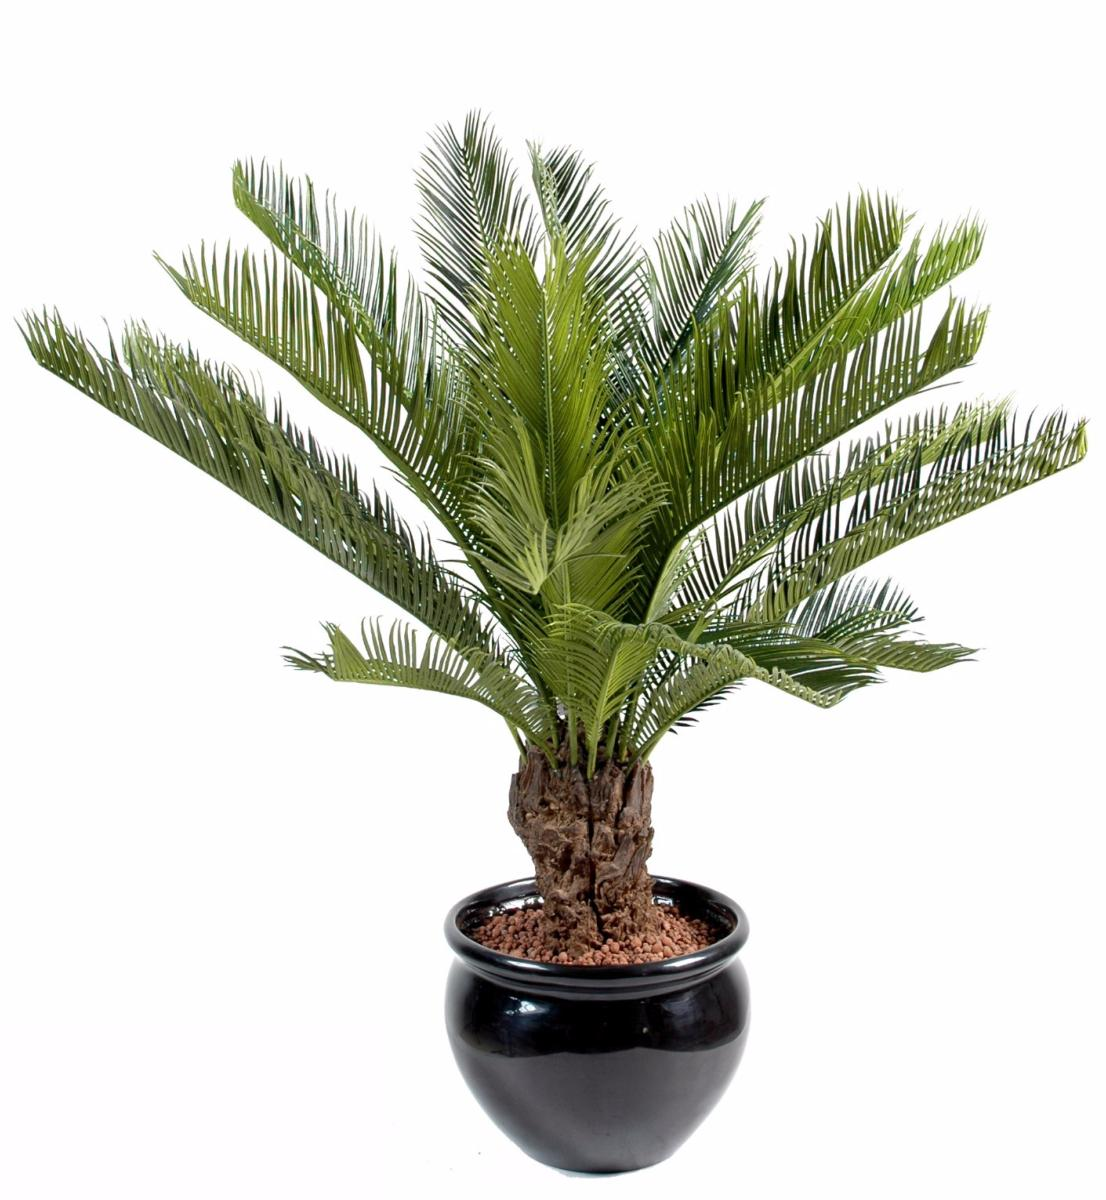 Palmier artificiel cycas tronc plante int rieur for Plante exotique exterieur